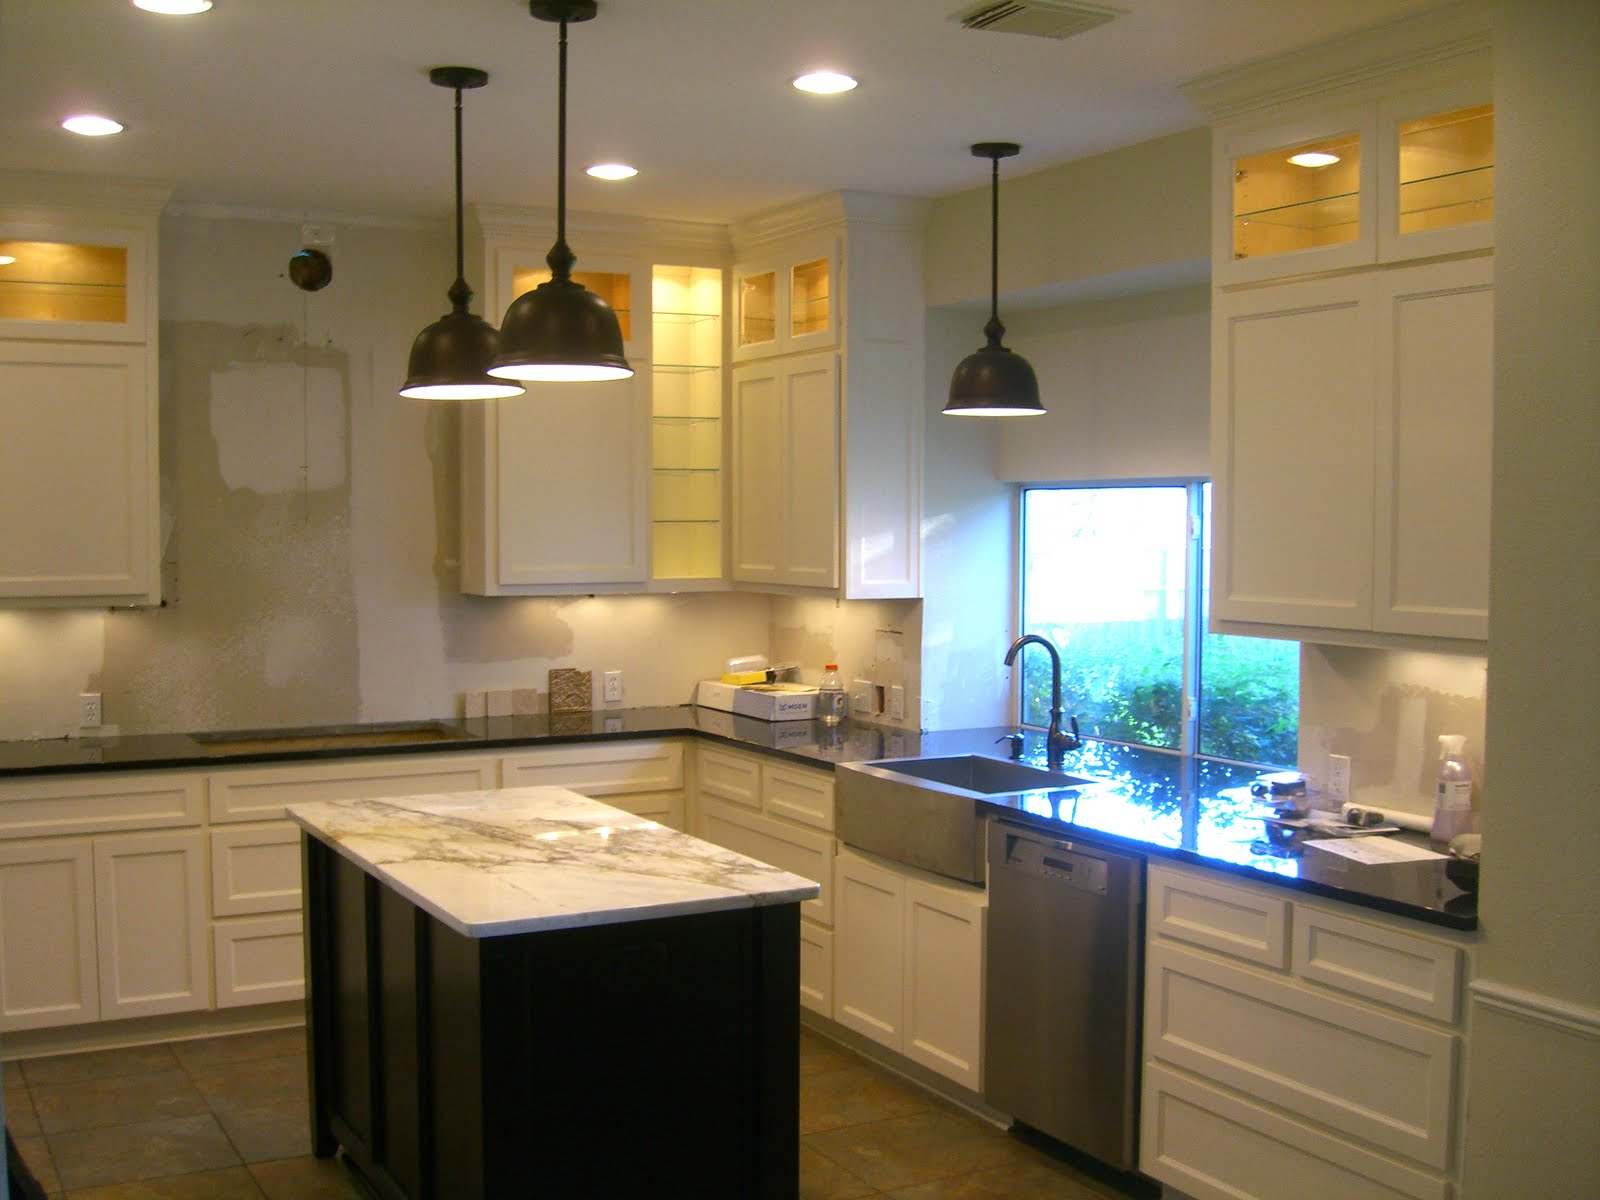 Kitchen ceiling lighting fixtures Photo - 9